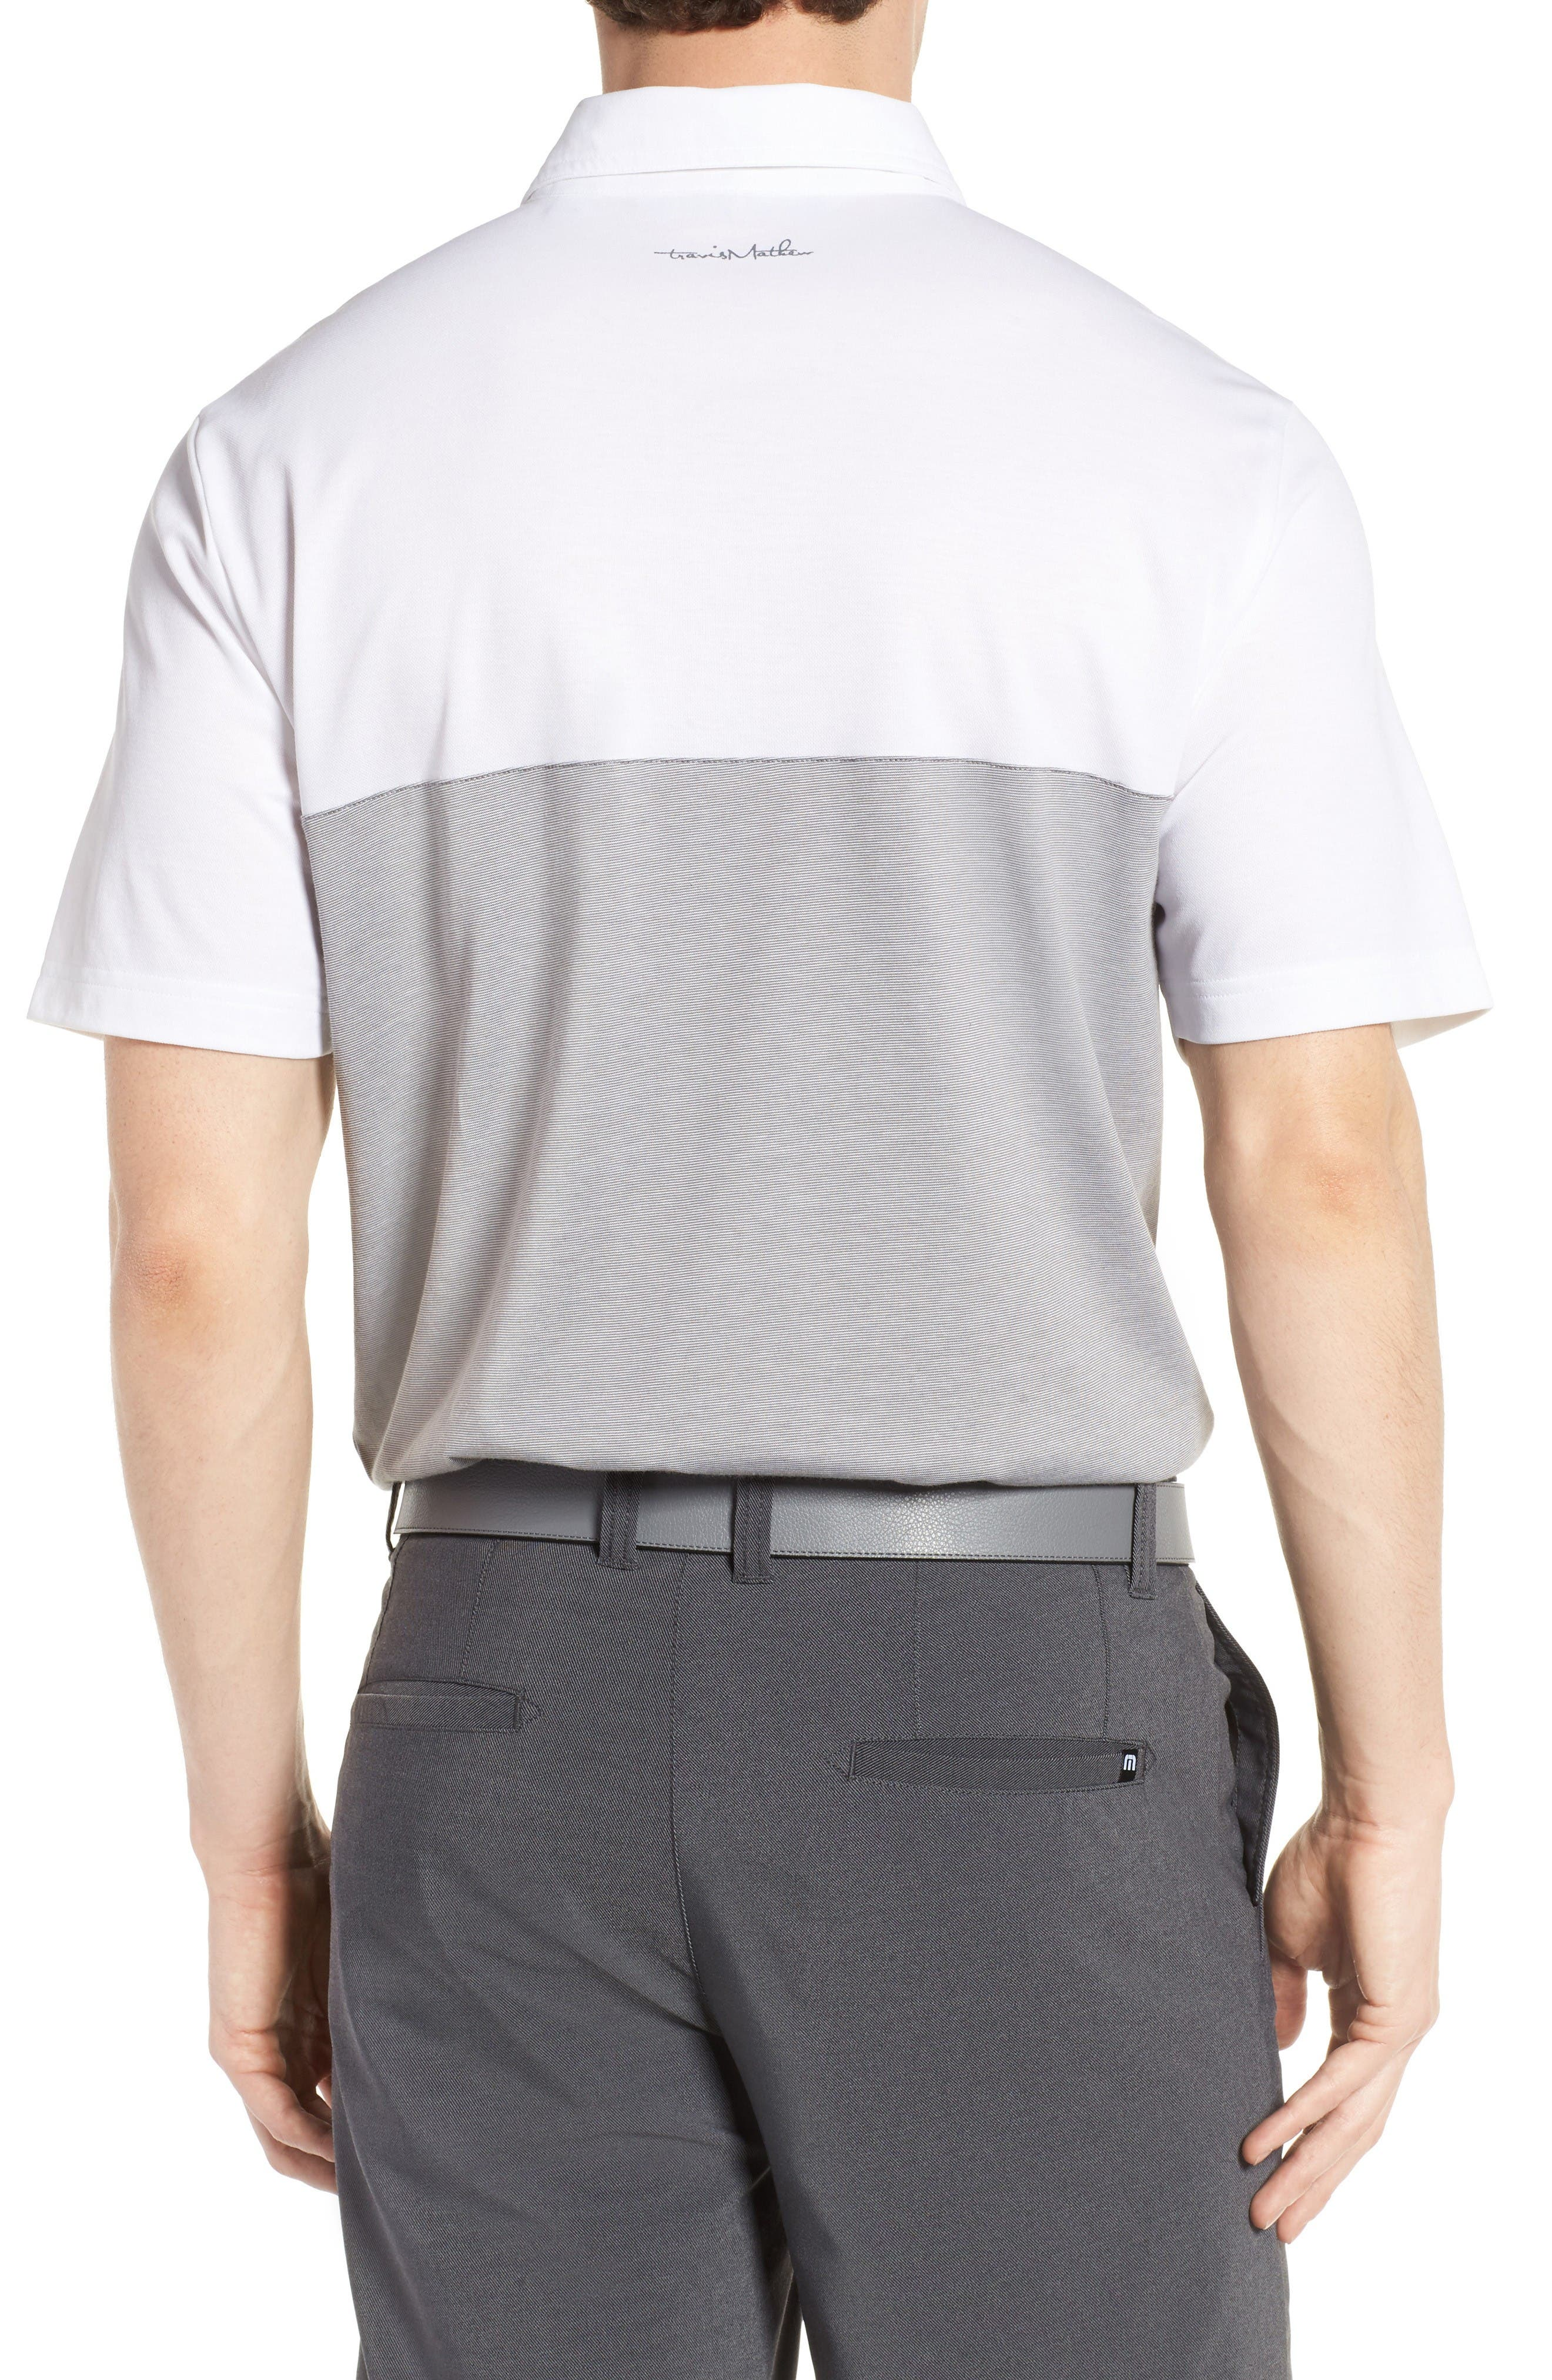 Sivanish Piqué Polo,                             Alternate thumbnail 2, color,                             White Quiet Shade